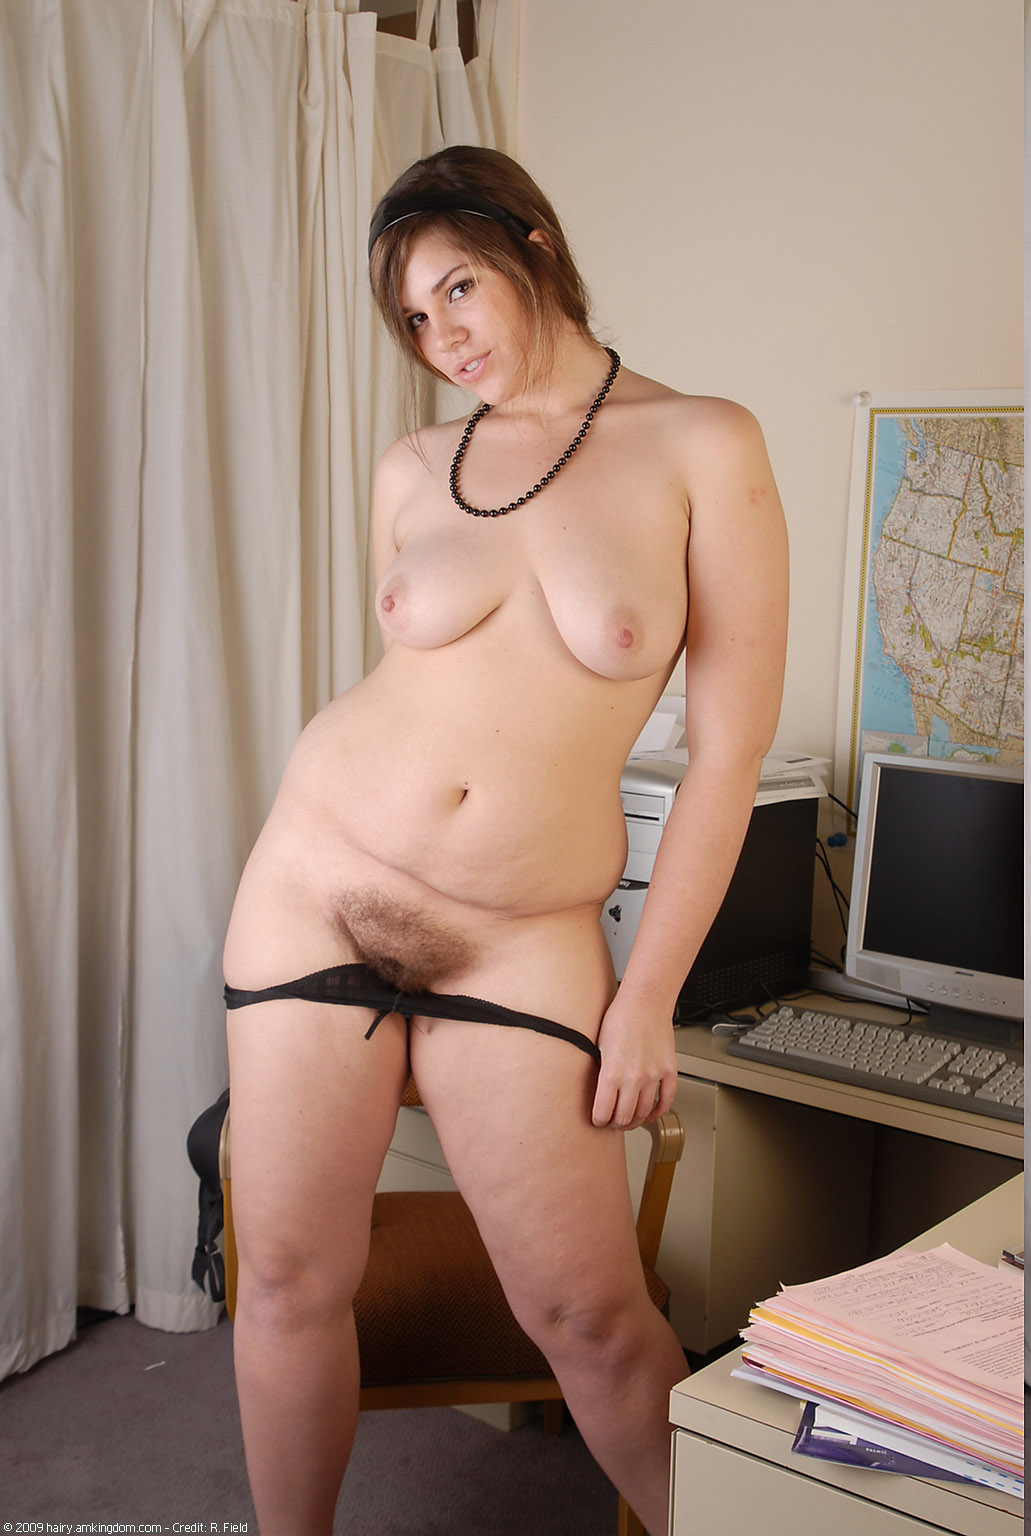 naked-chubby-girls-thursday-bdsm-redhead